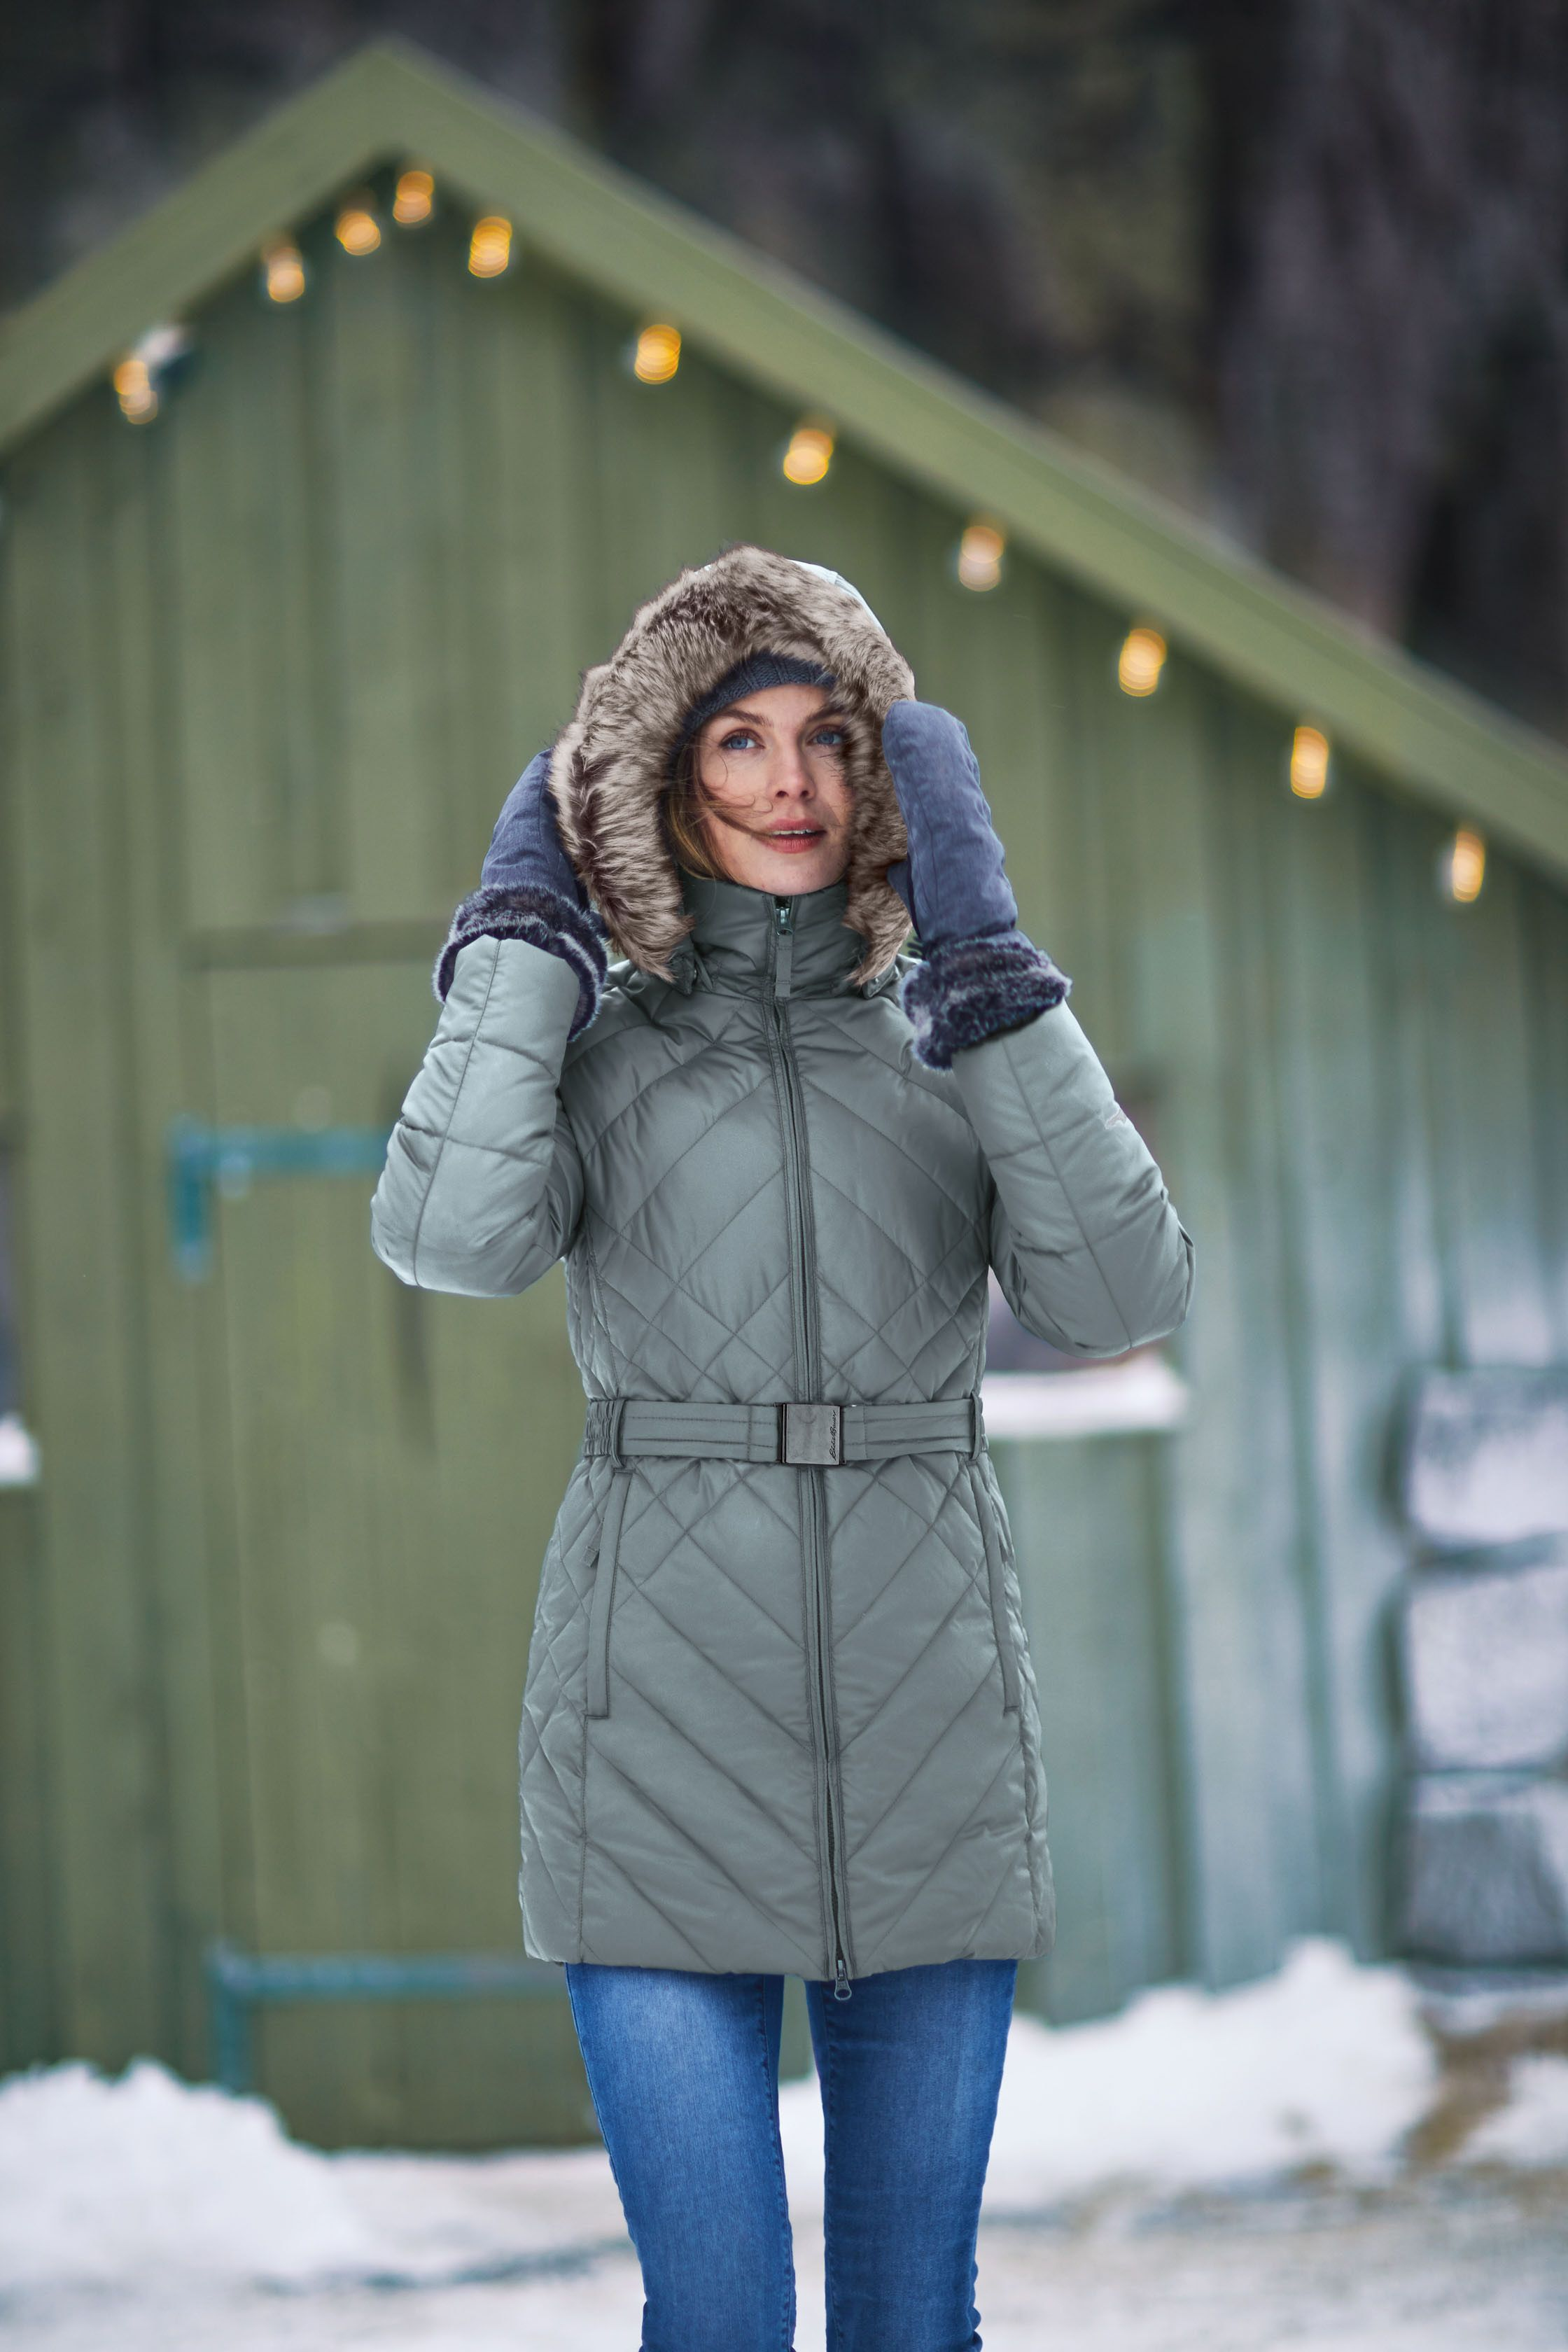 89259f1f2 The newest edition of one of our most popular parkas, the Slope Side 2.0  offers